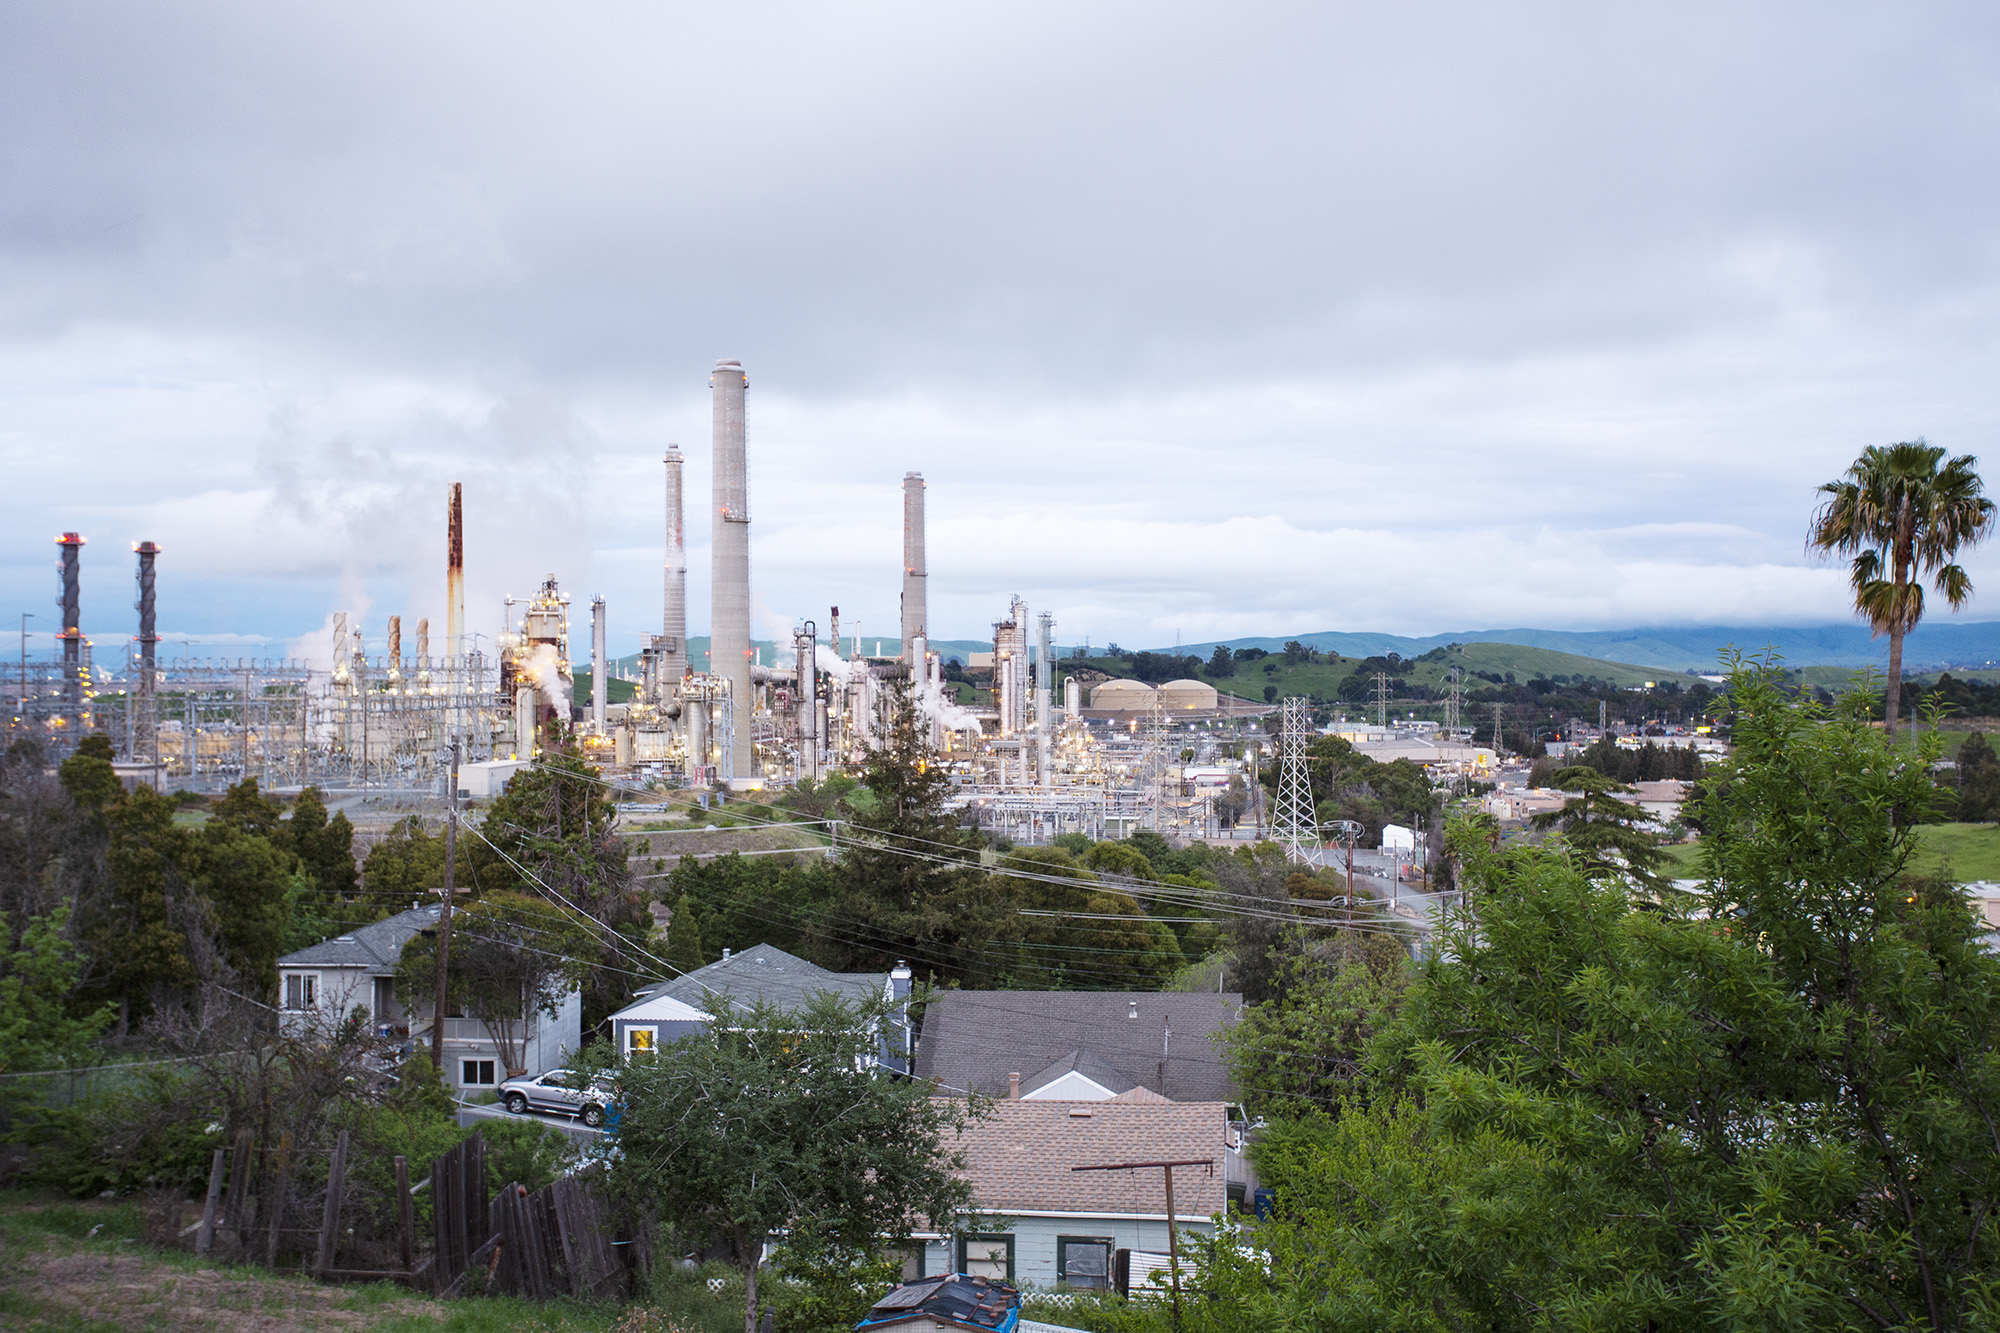 living with the Martinez refinery